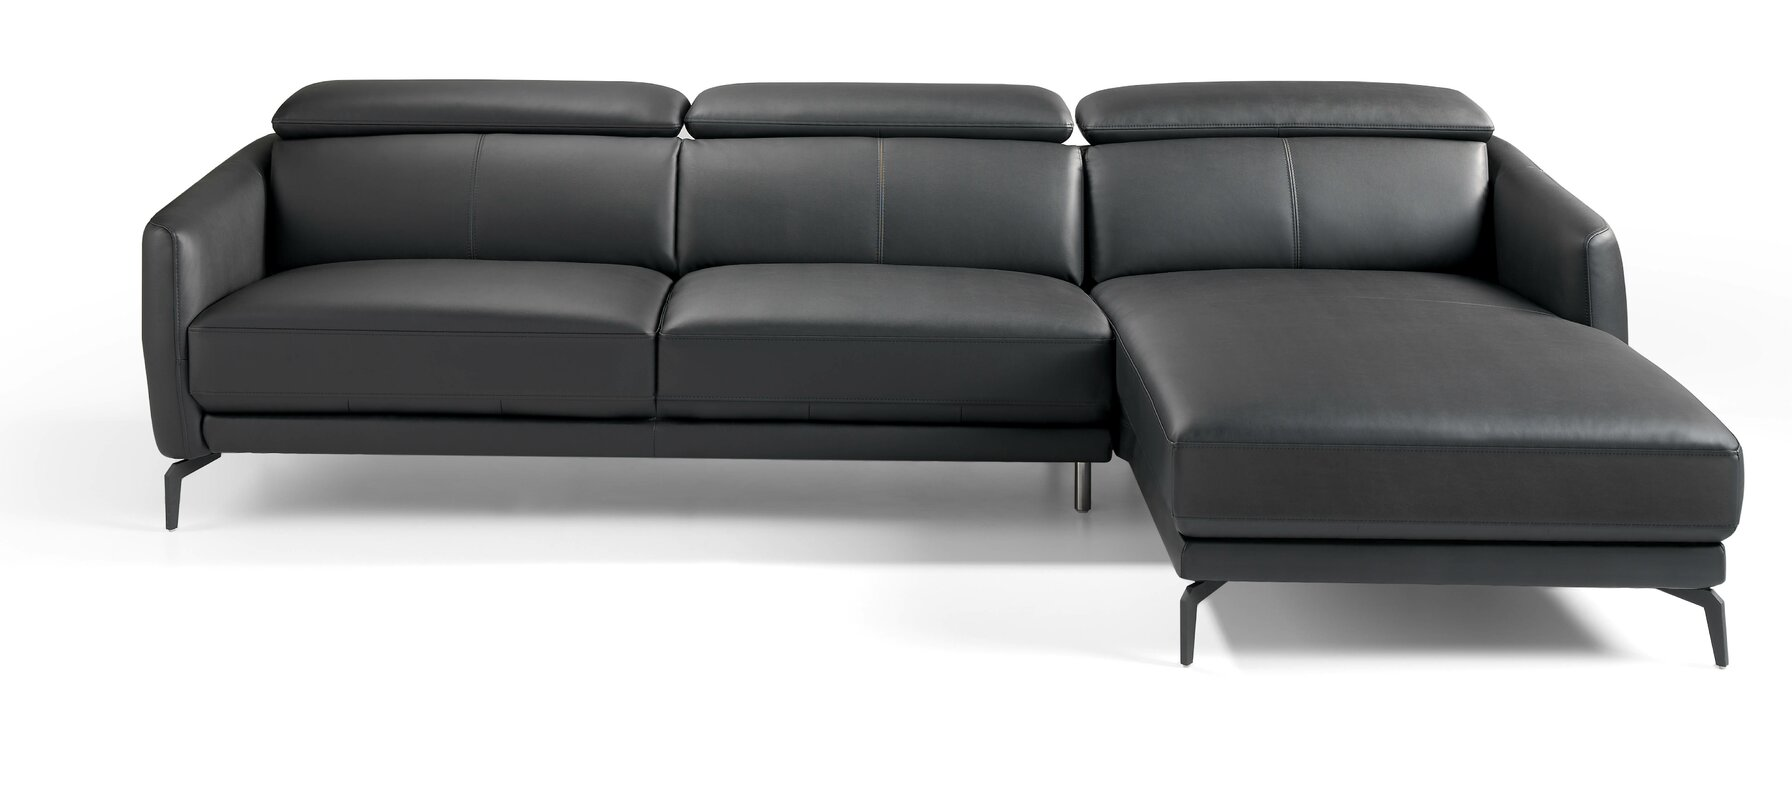 angel cerda ecksofa aus echtleder bewertungen. Black Bedroom Furniture Sets. Home Design Ideas